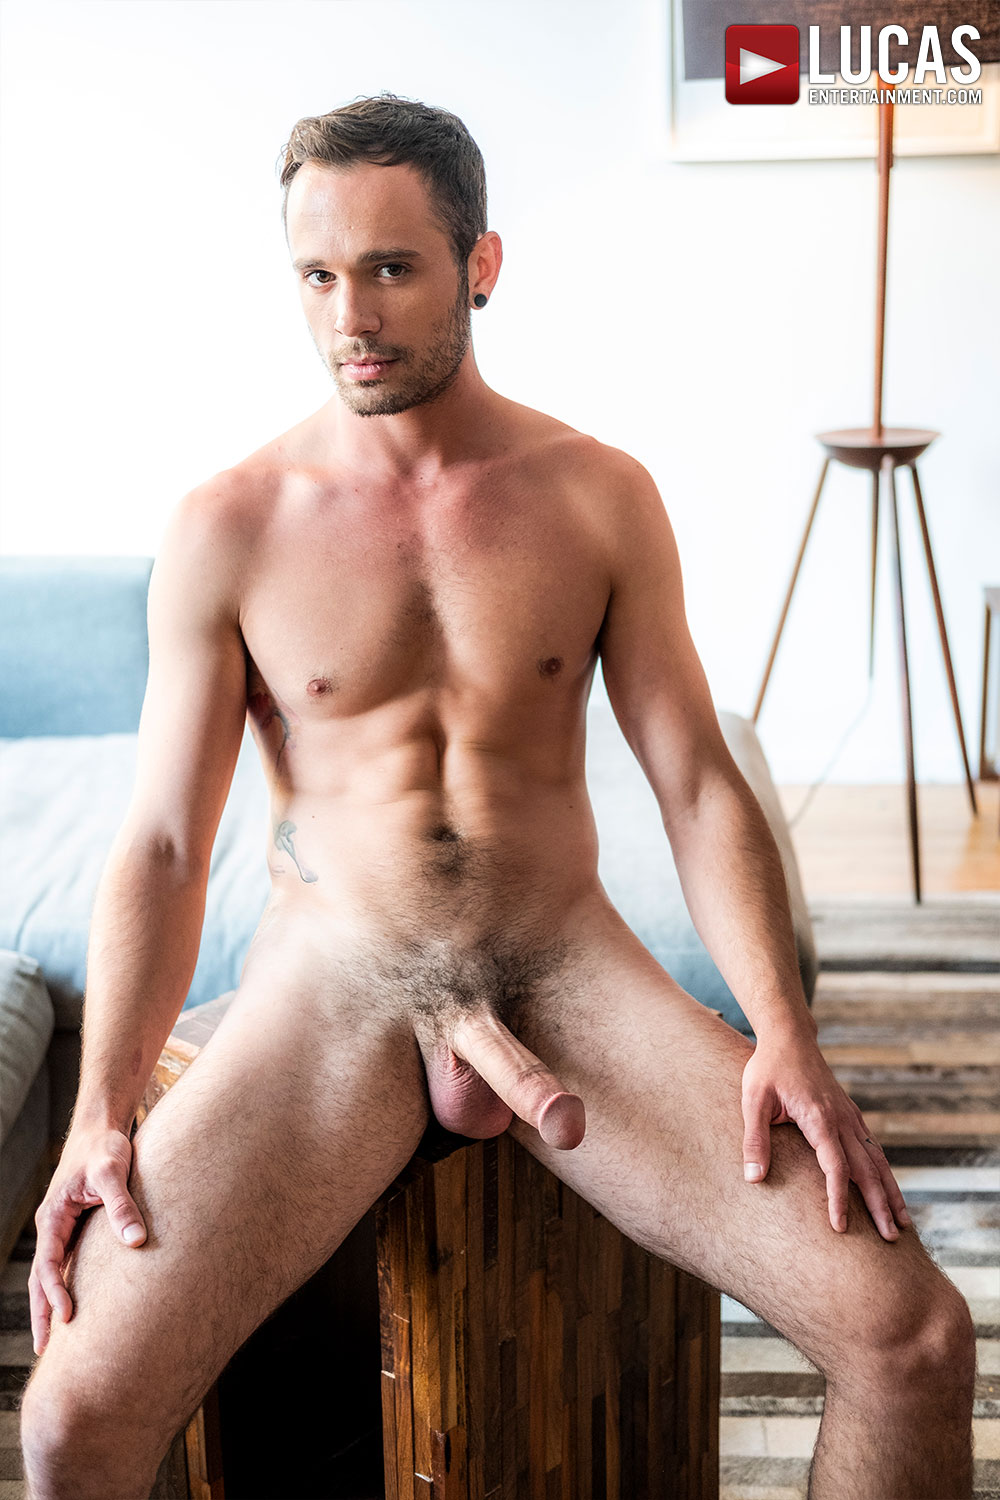 Drake Rogers 07 | Gay Porn Model | Lucas Entertainment